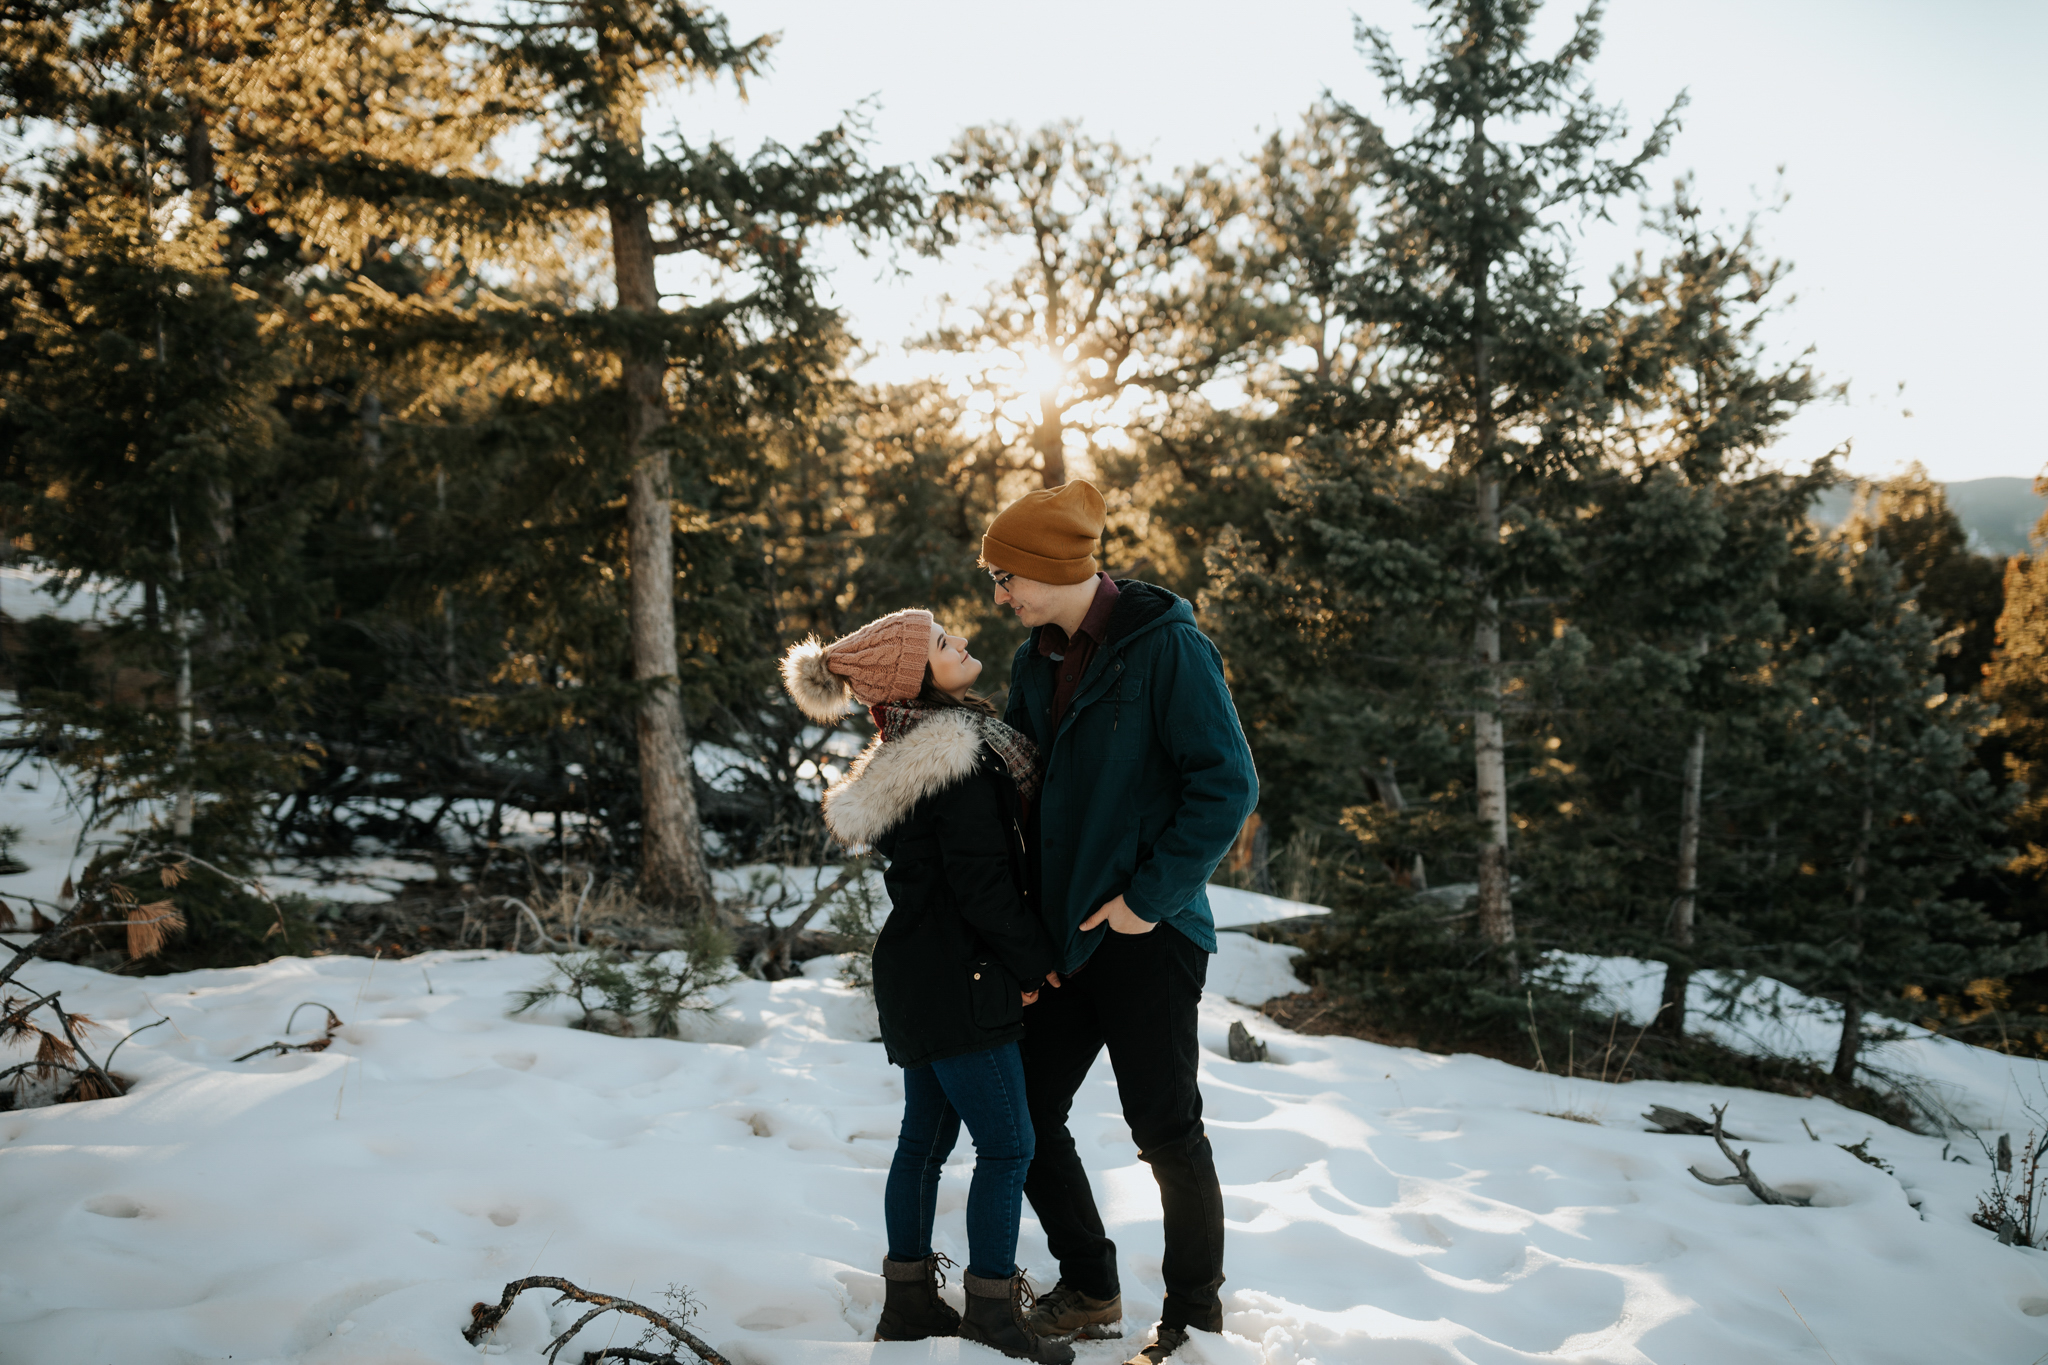 Leah Nicole Photography - Houston Wedding Photographer-Colorado Mountaintop Engagement Session- Houston Wedding Photographer -Kristen Giles Photography-12.jpg